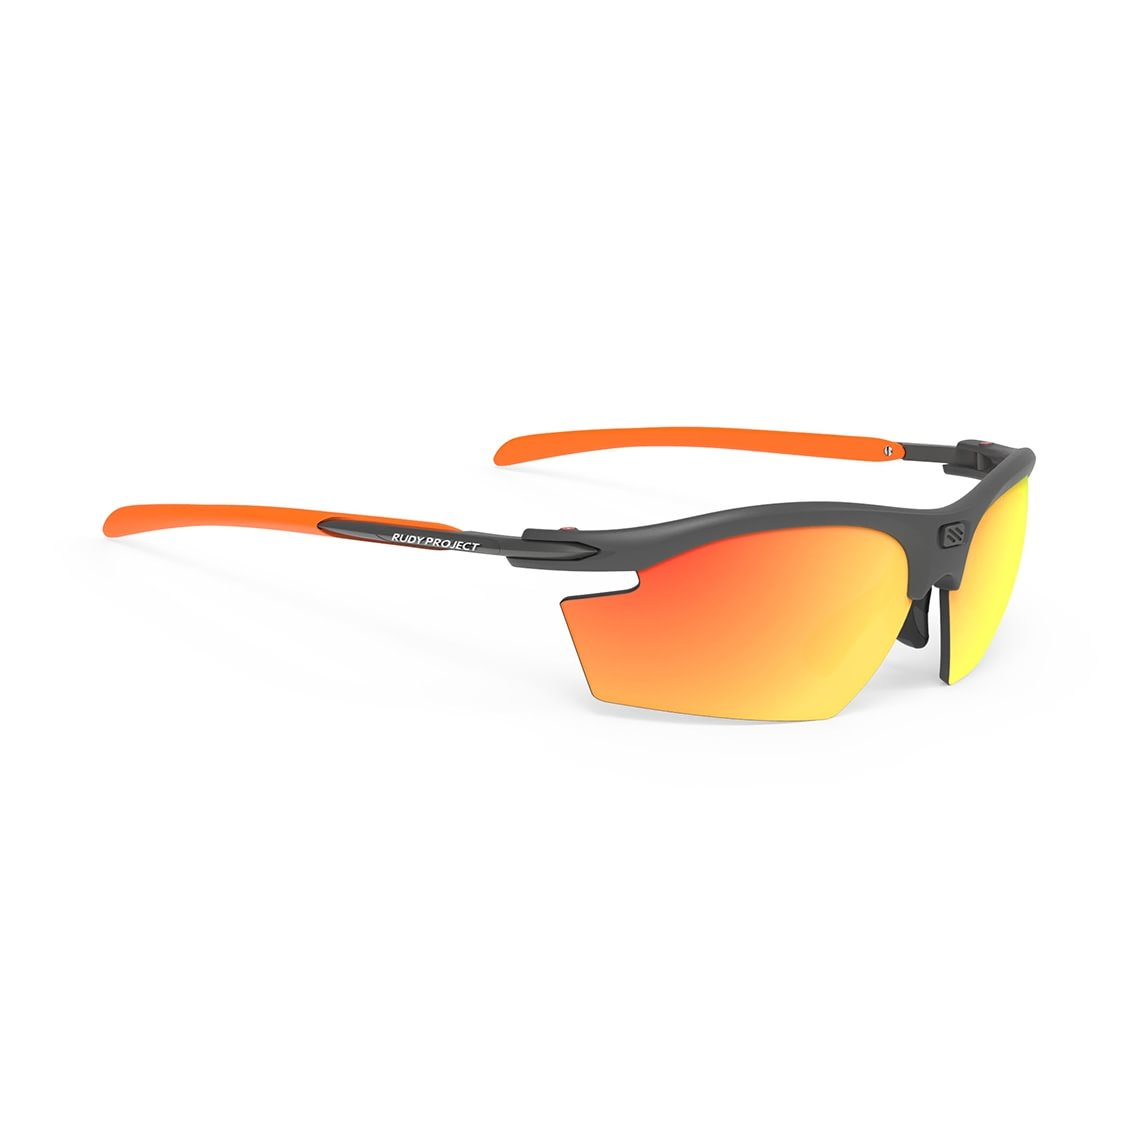 Rudy Project Rydon MLS ORANGE GRAPHITE SP534098-0000